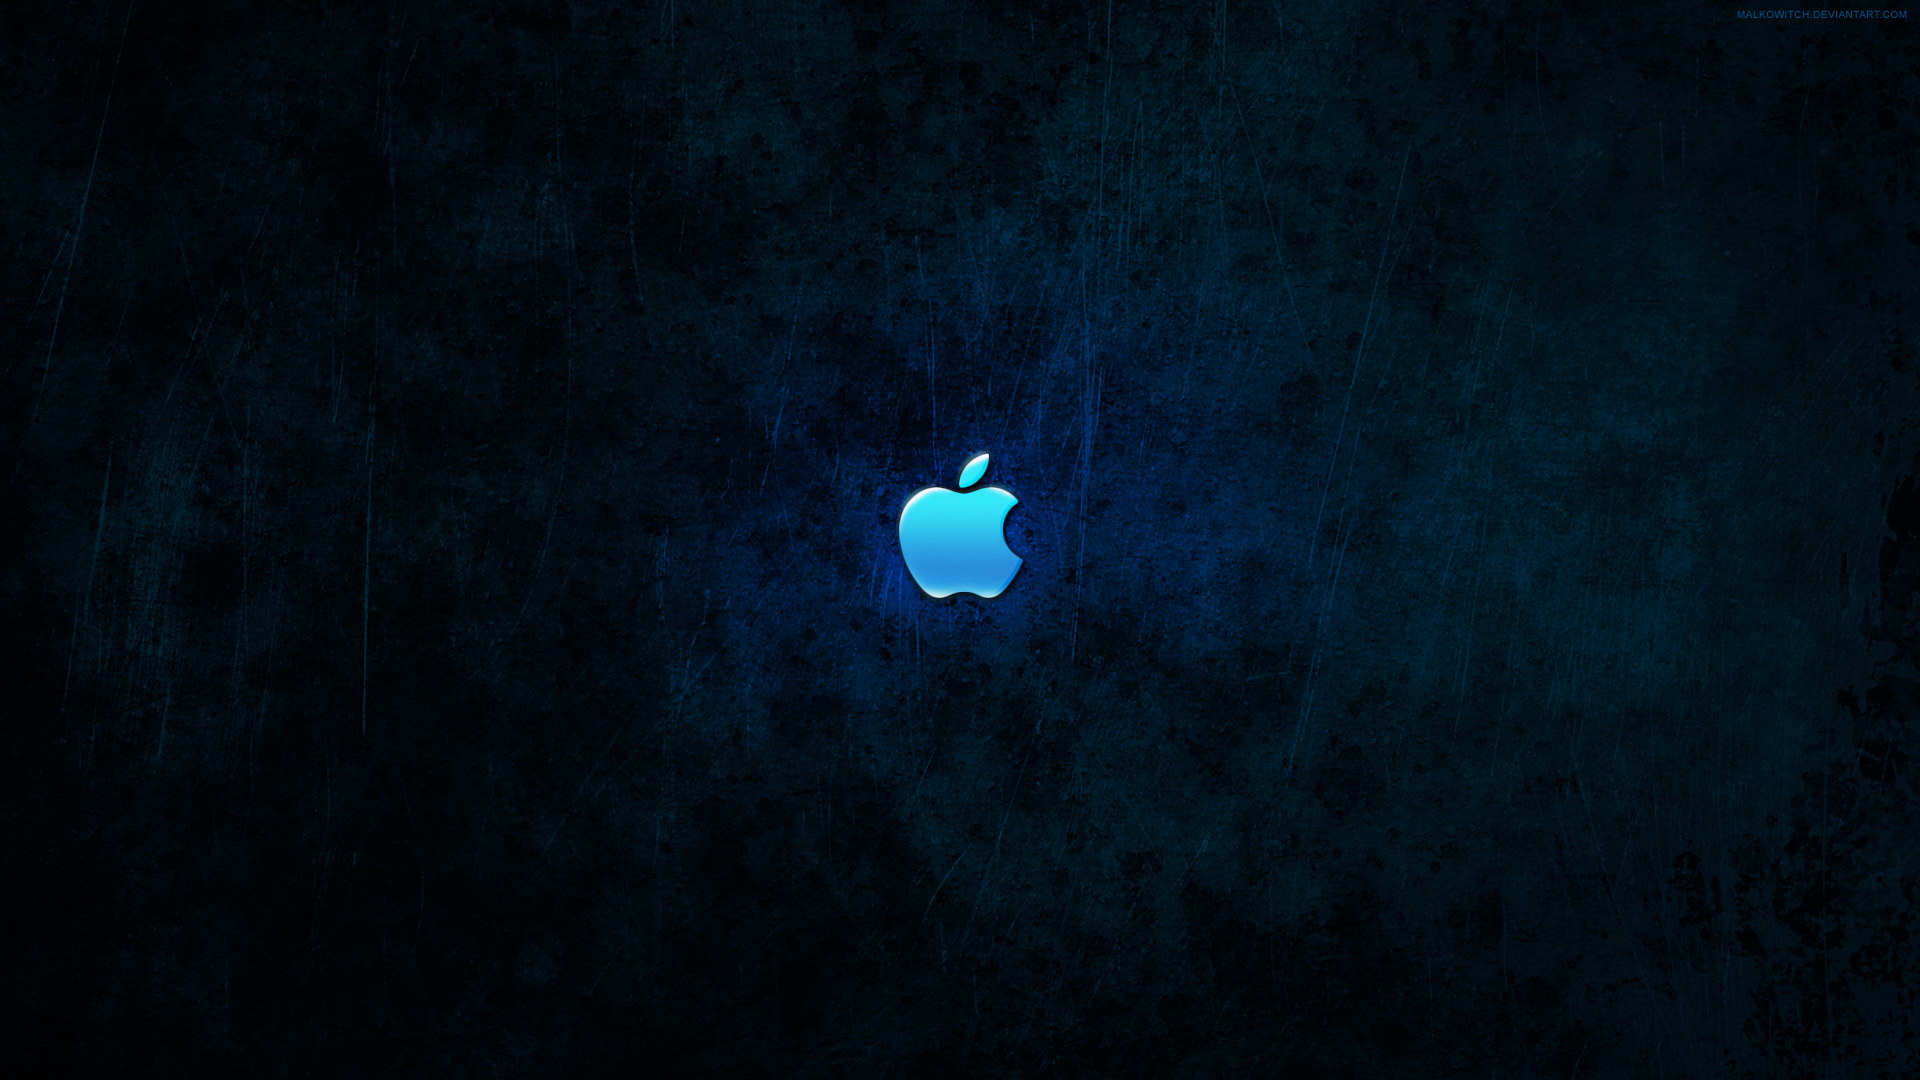 apple dark blue wallpapermalkowitch on deviantart